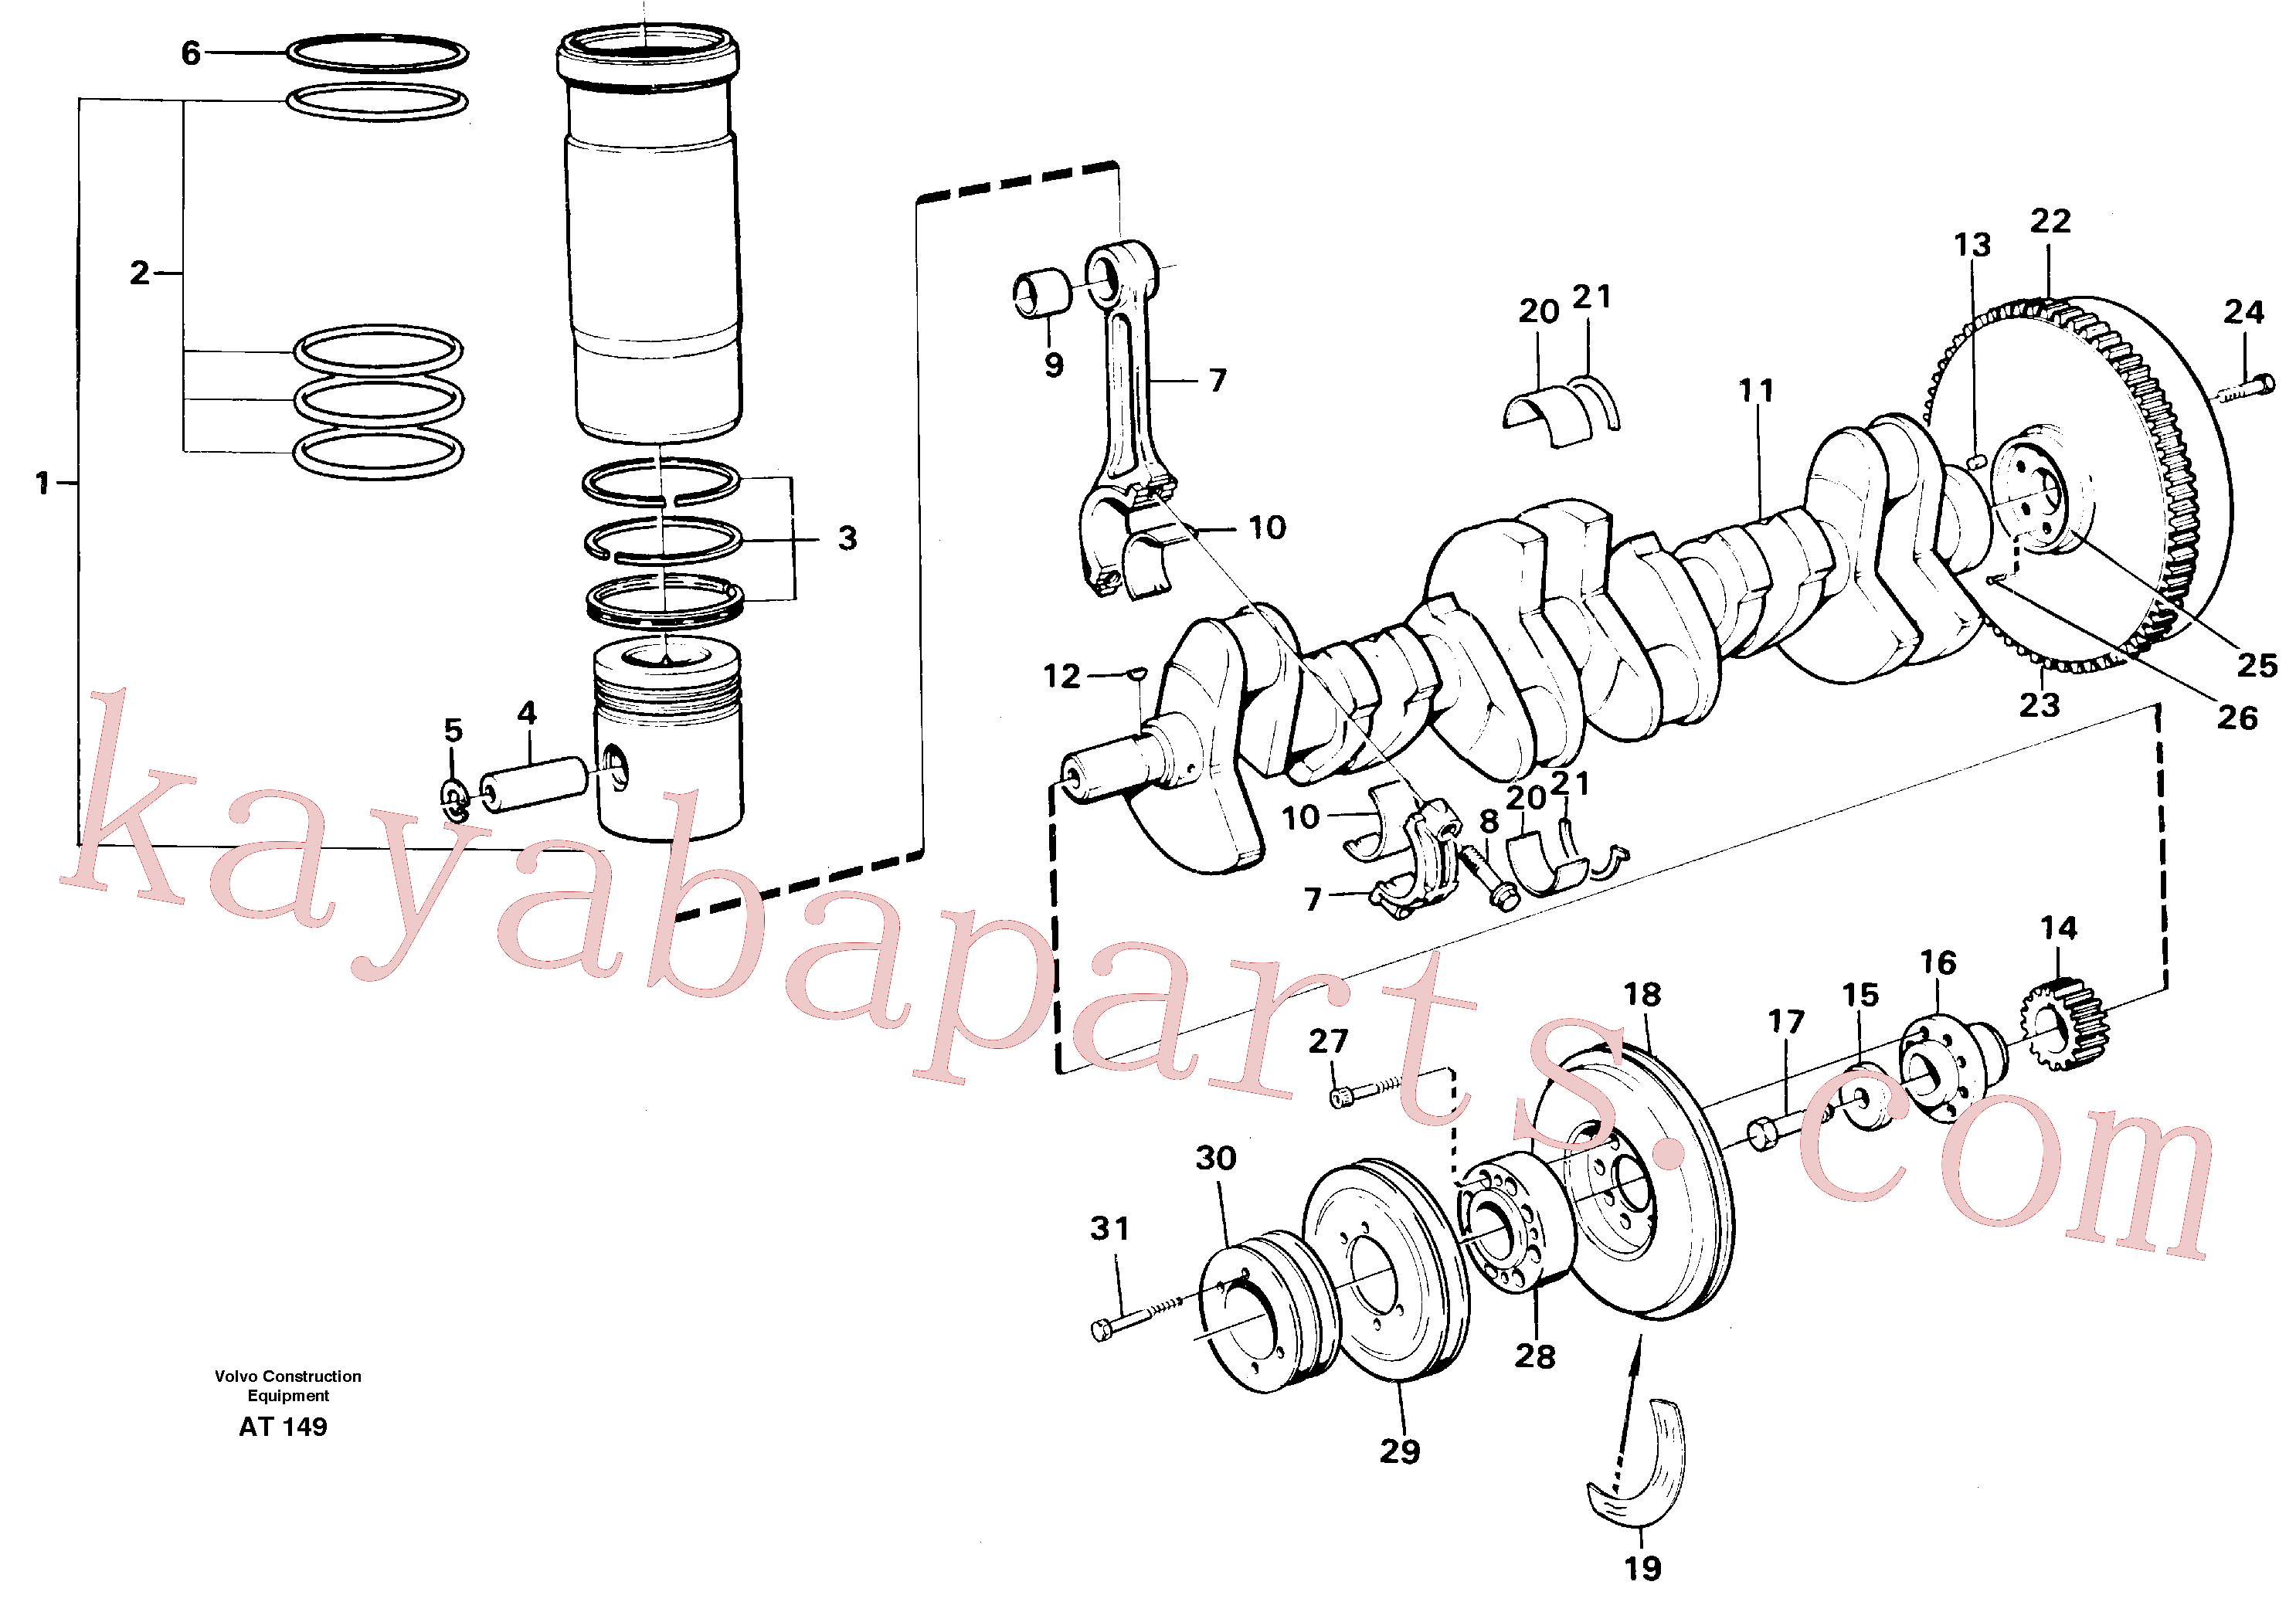 SA9324-21617 for Volvo Crankshaft and related parts(AT149 assembly)